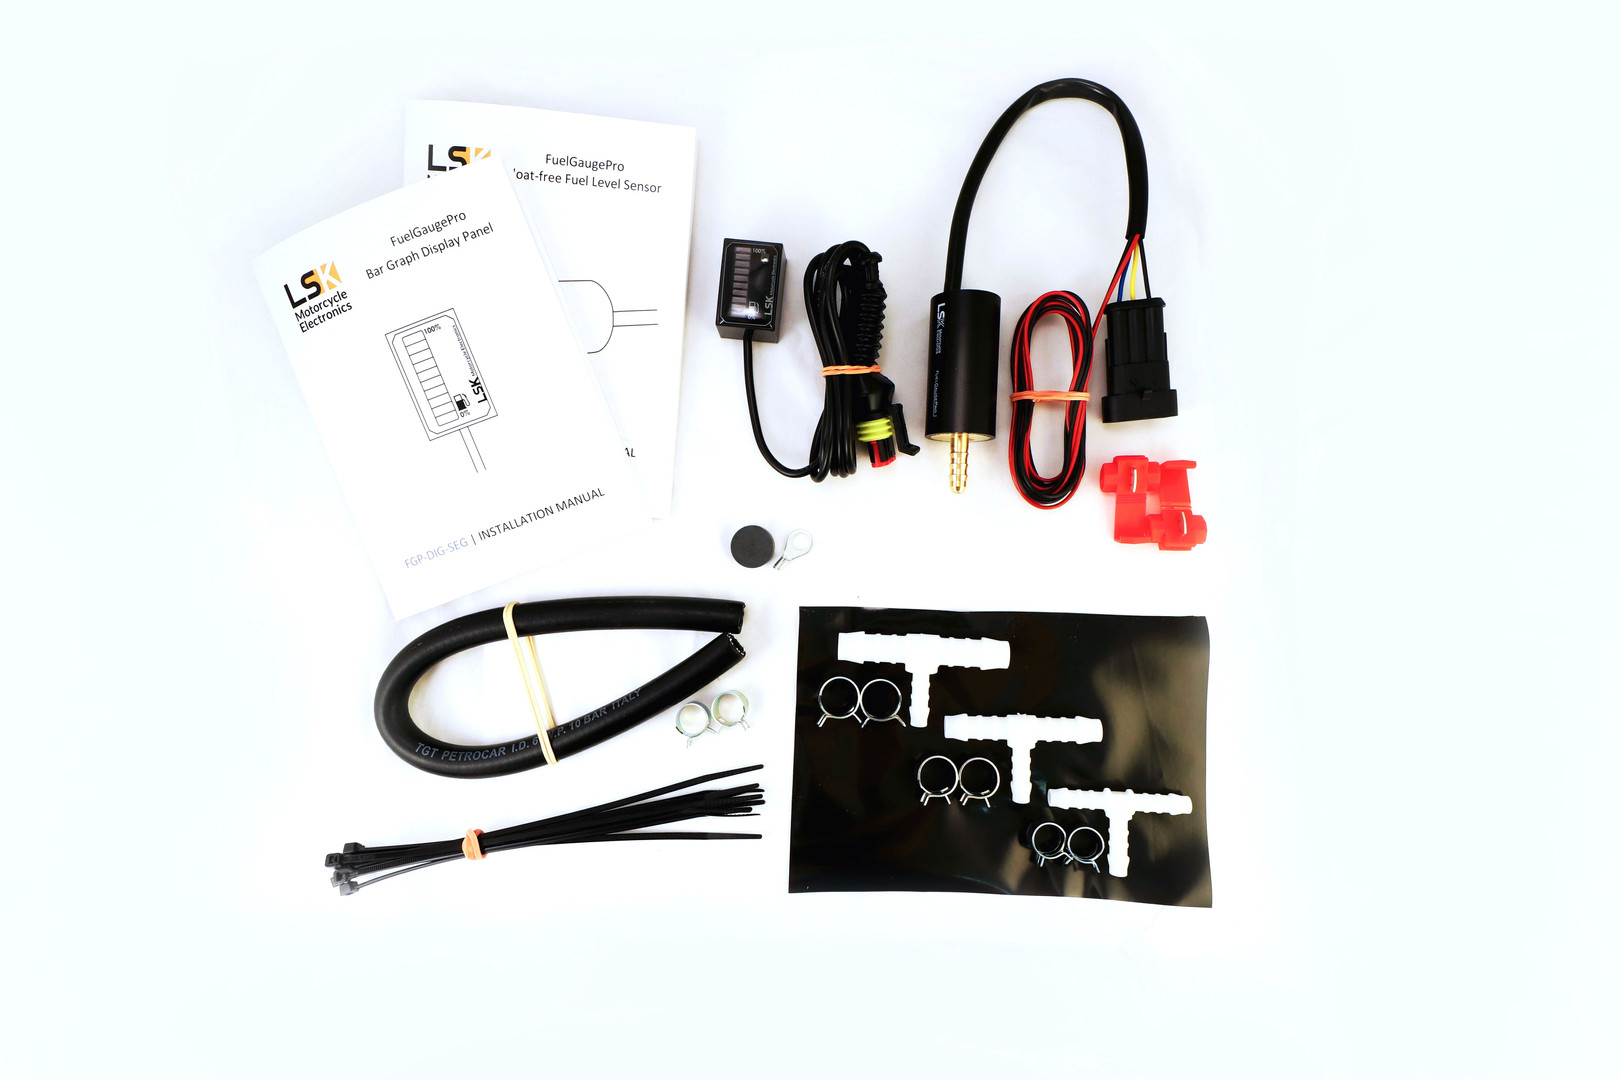 FuelGaugePro - Low Fuel Level Warning Light Kit